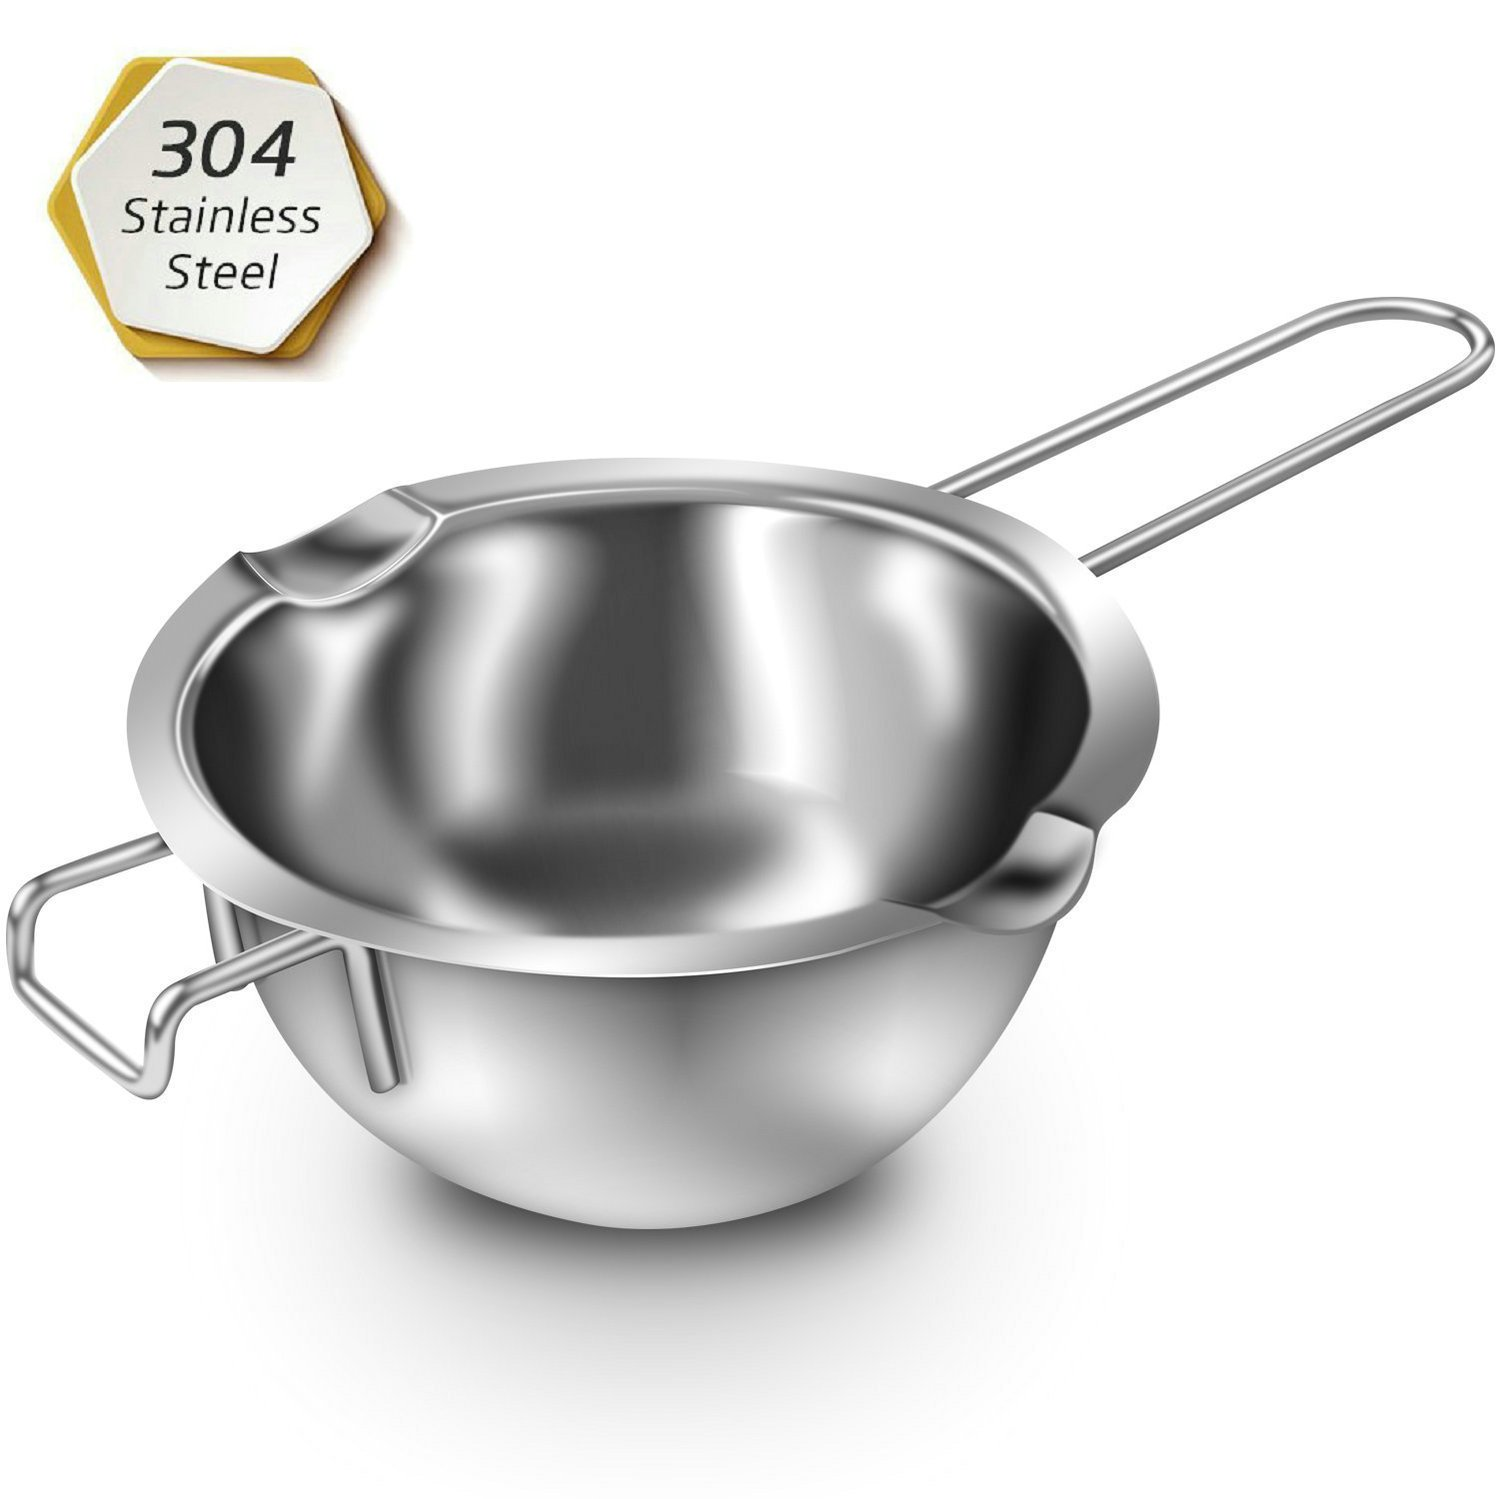 GuDoQi 304 Stainless Steel Chocolate Pot Double Boiler Universal Melting Pot for Butter Chocolate Cheese Caramel QBY